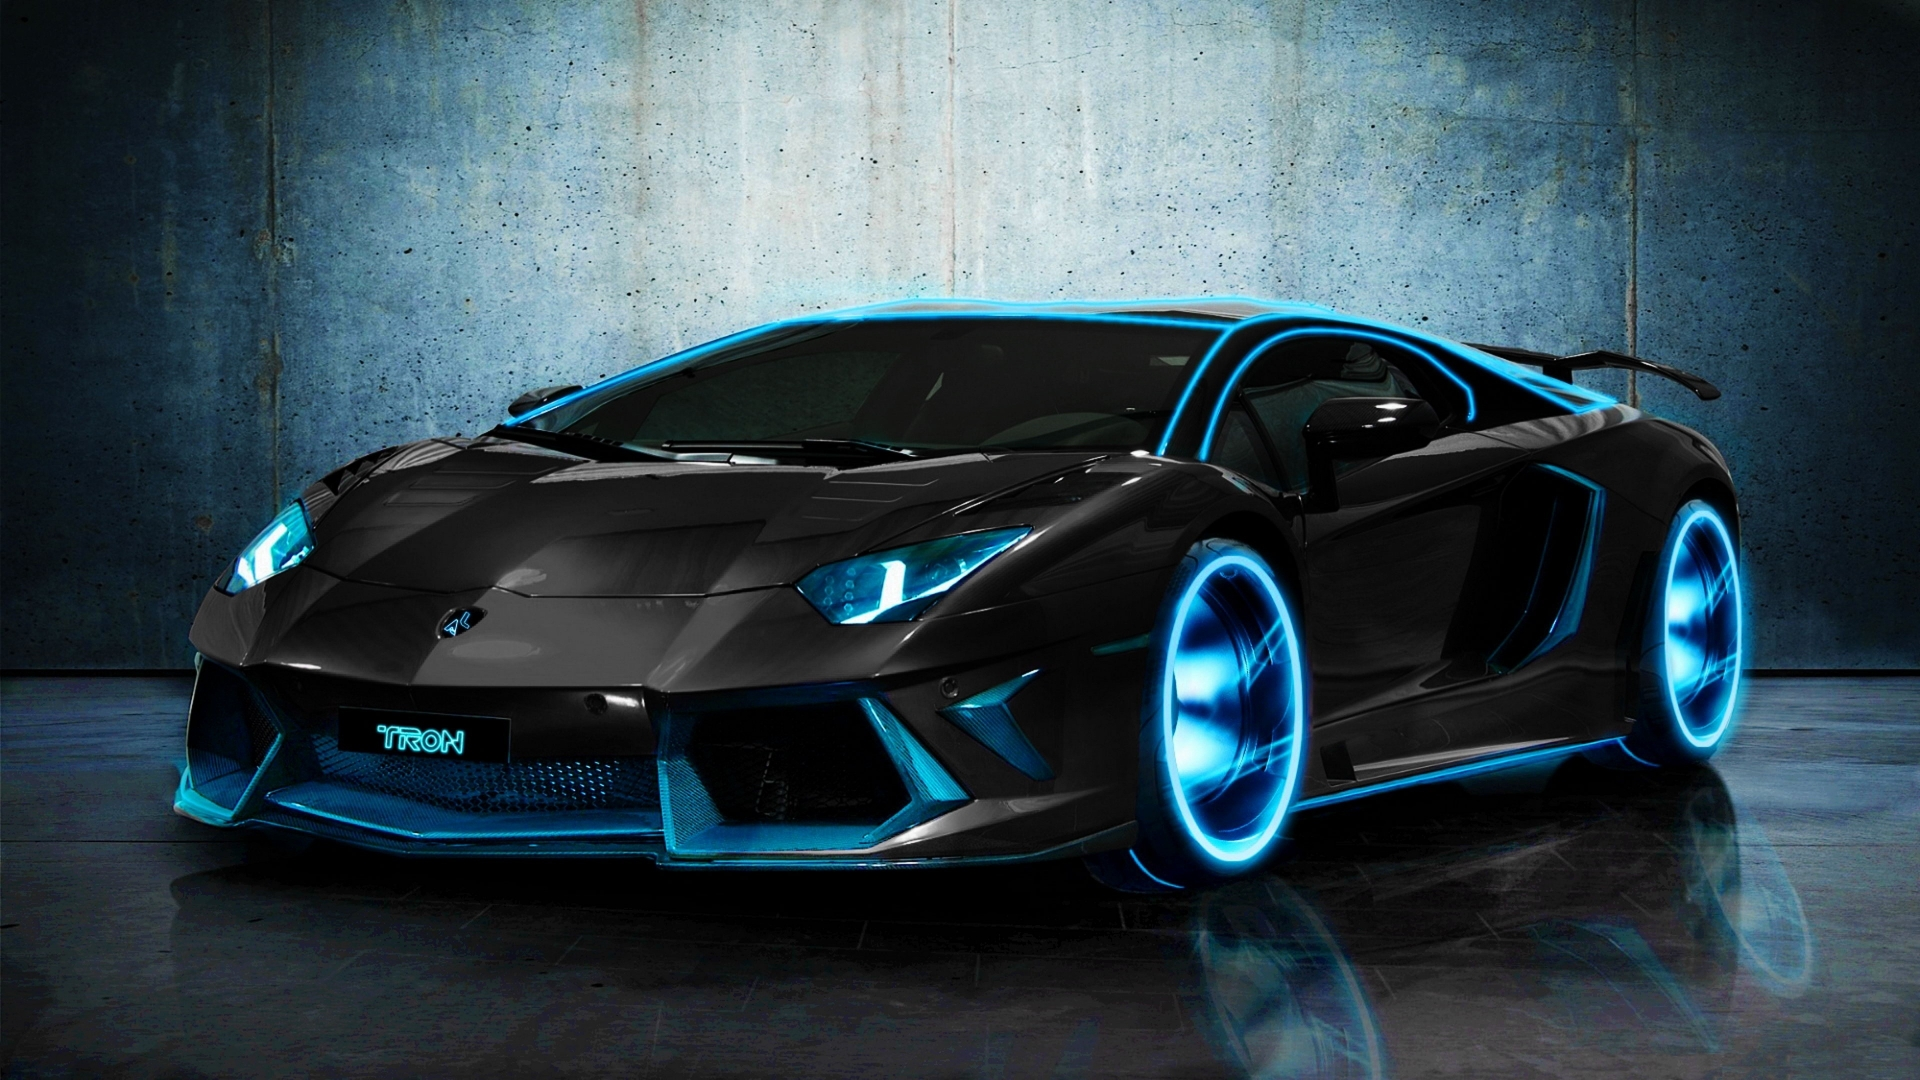 Lamborghini Aventador Wallpapers A11